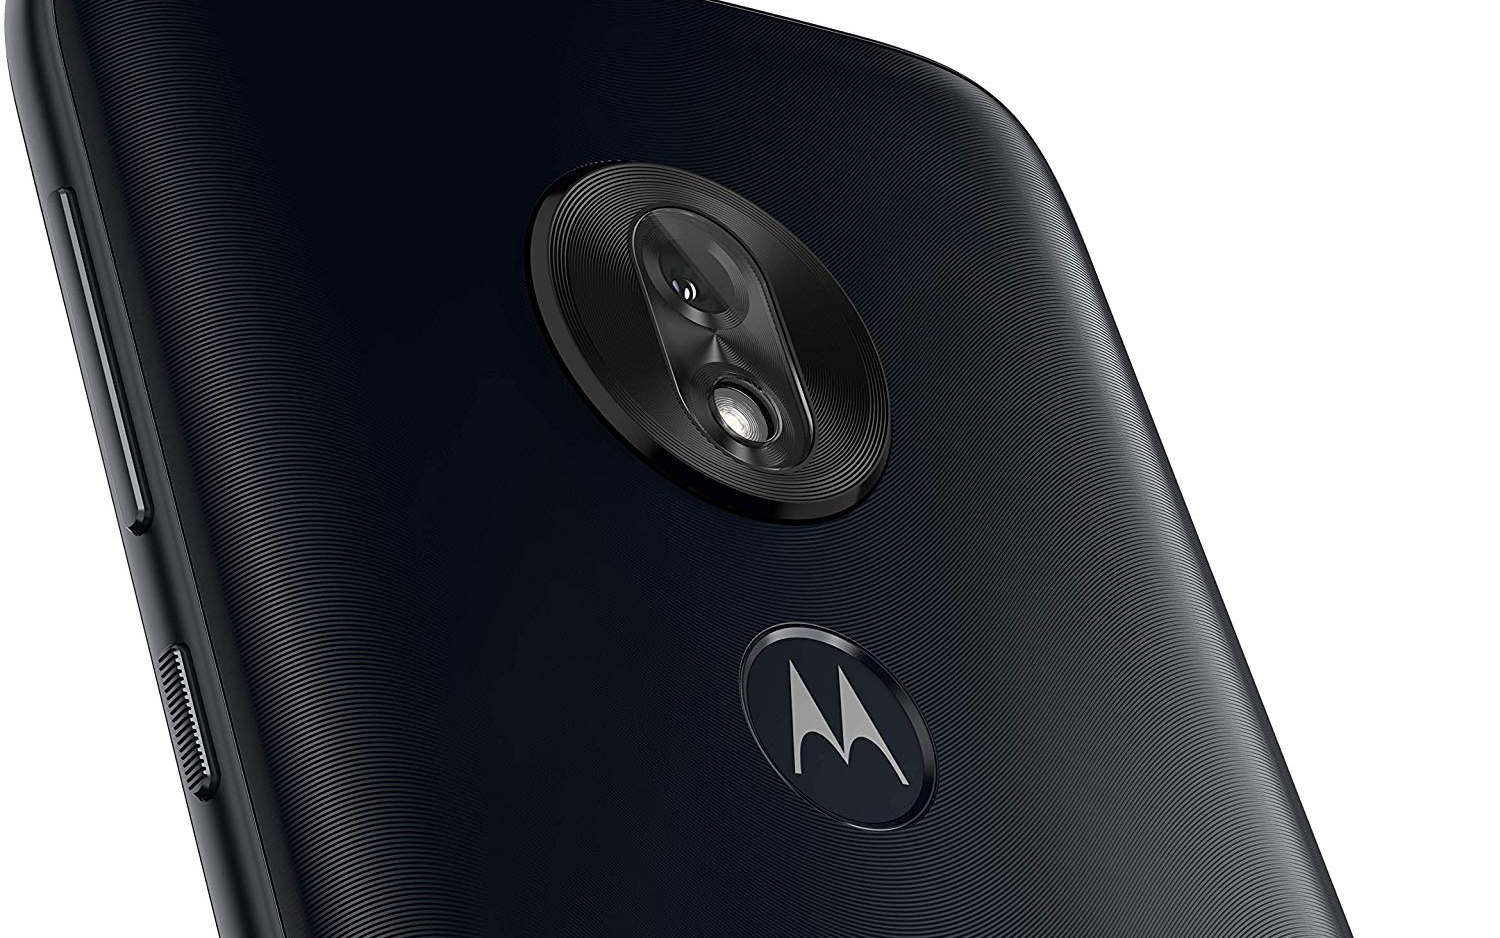 The unlocked Moto G7 Play with Alexa Push-to-Talk is as low as $130 ($70 off) on Amazon (Update: Non-Alexa version also on sale)